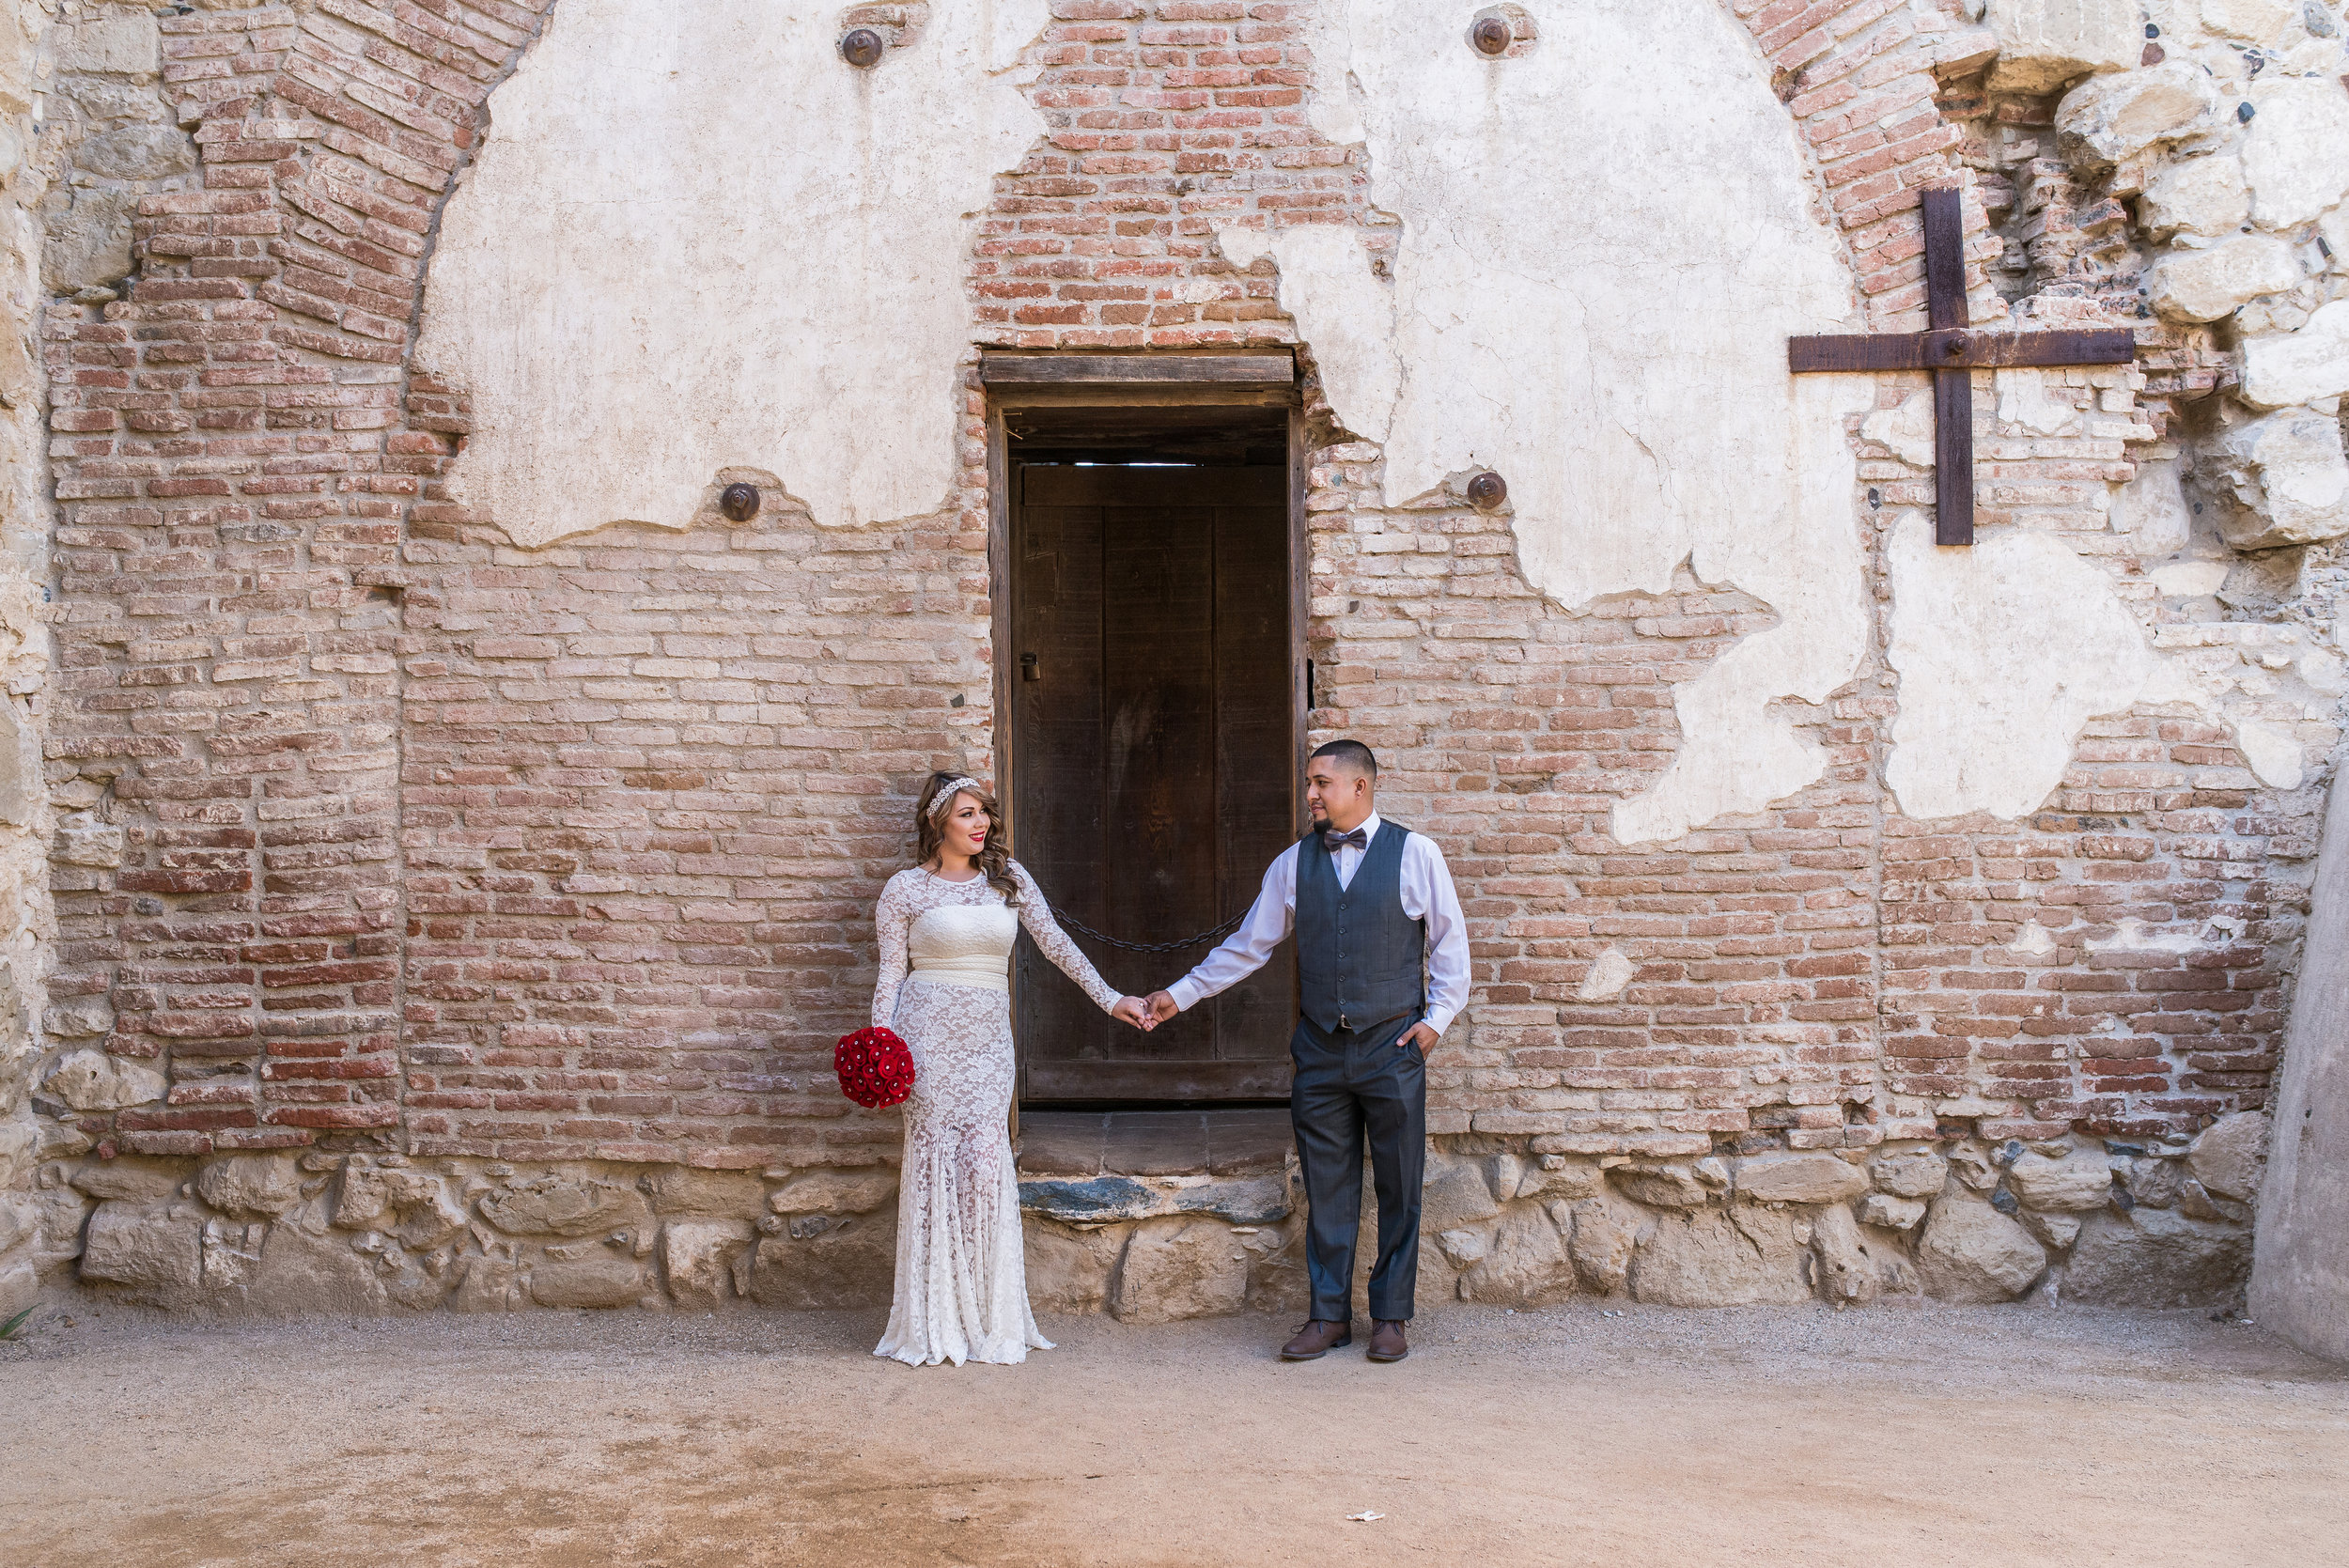 San Juan Capistrano  is probably a top location for photo shoots. It is often asked for because of just how beautiful it is. There is an extra charge of $200 for having an engagement here and there is a permit fee but it is worth it.